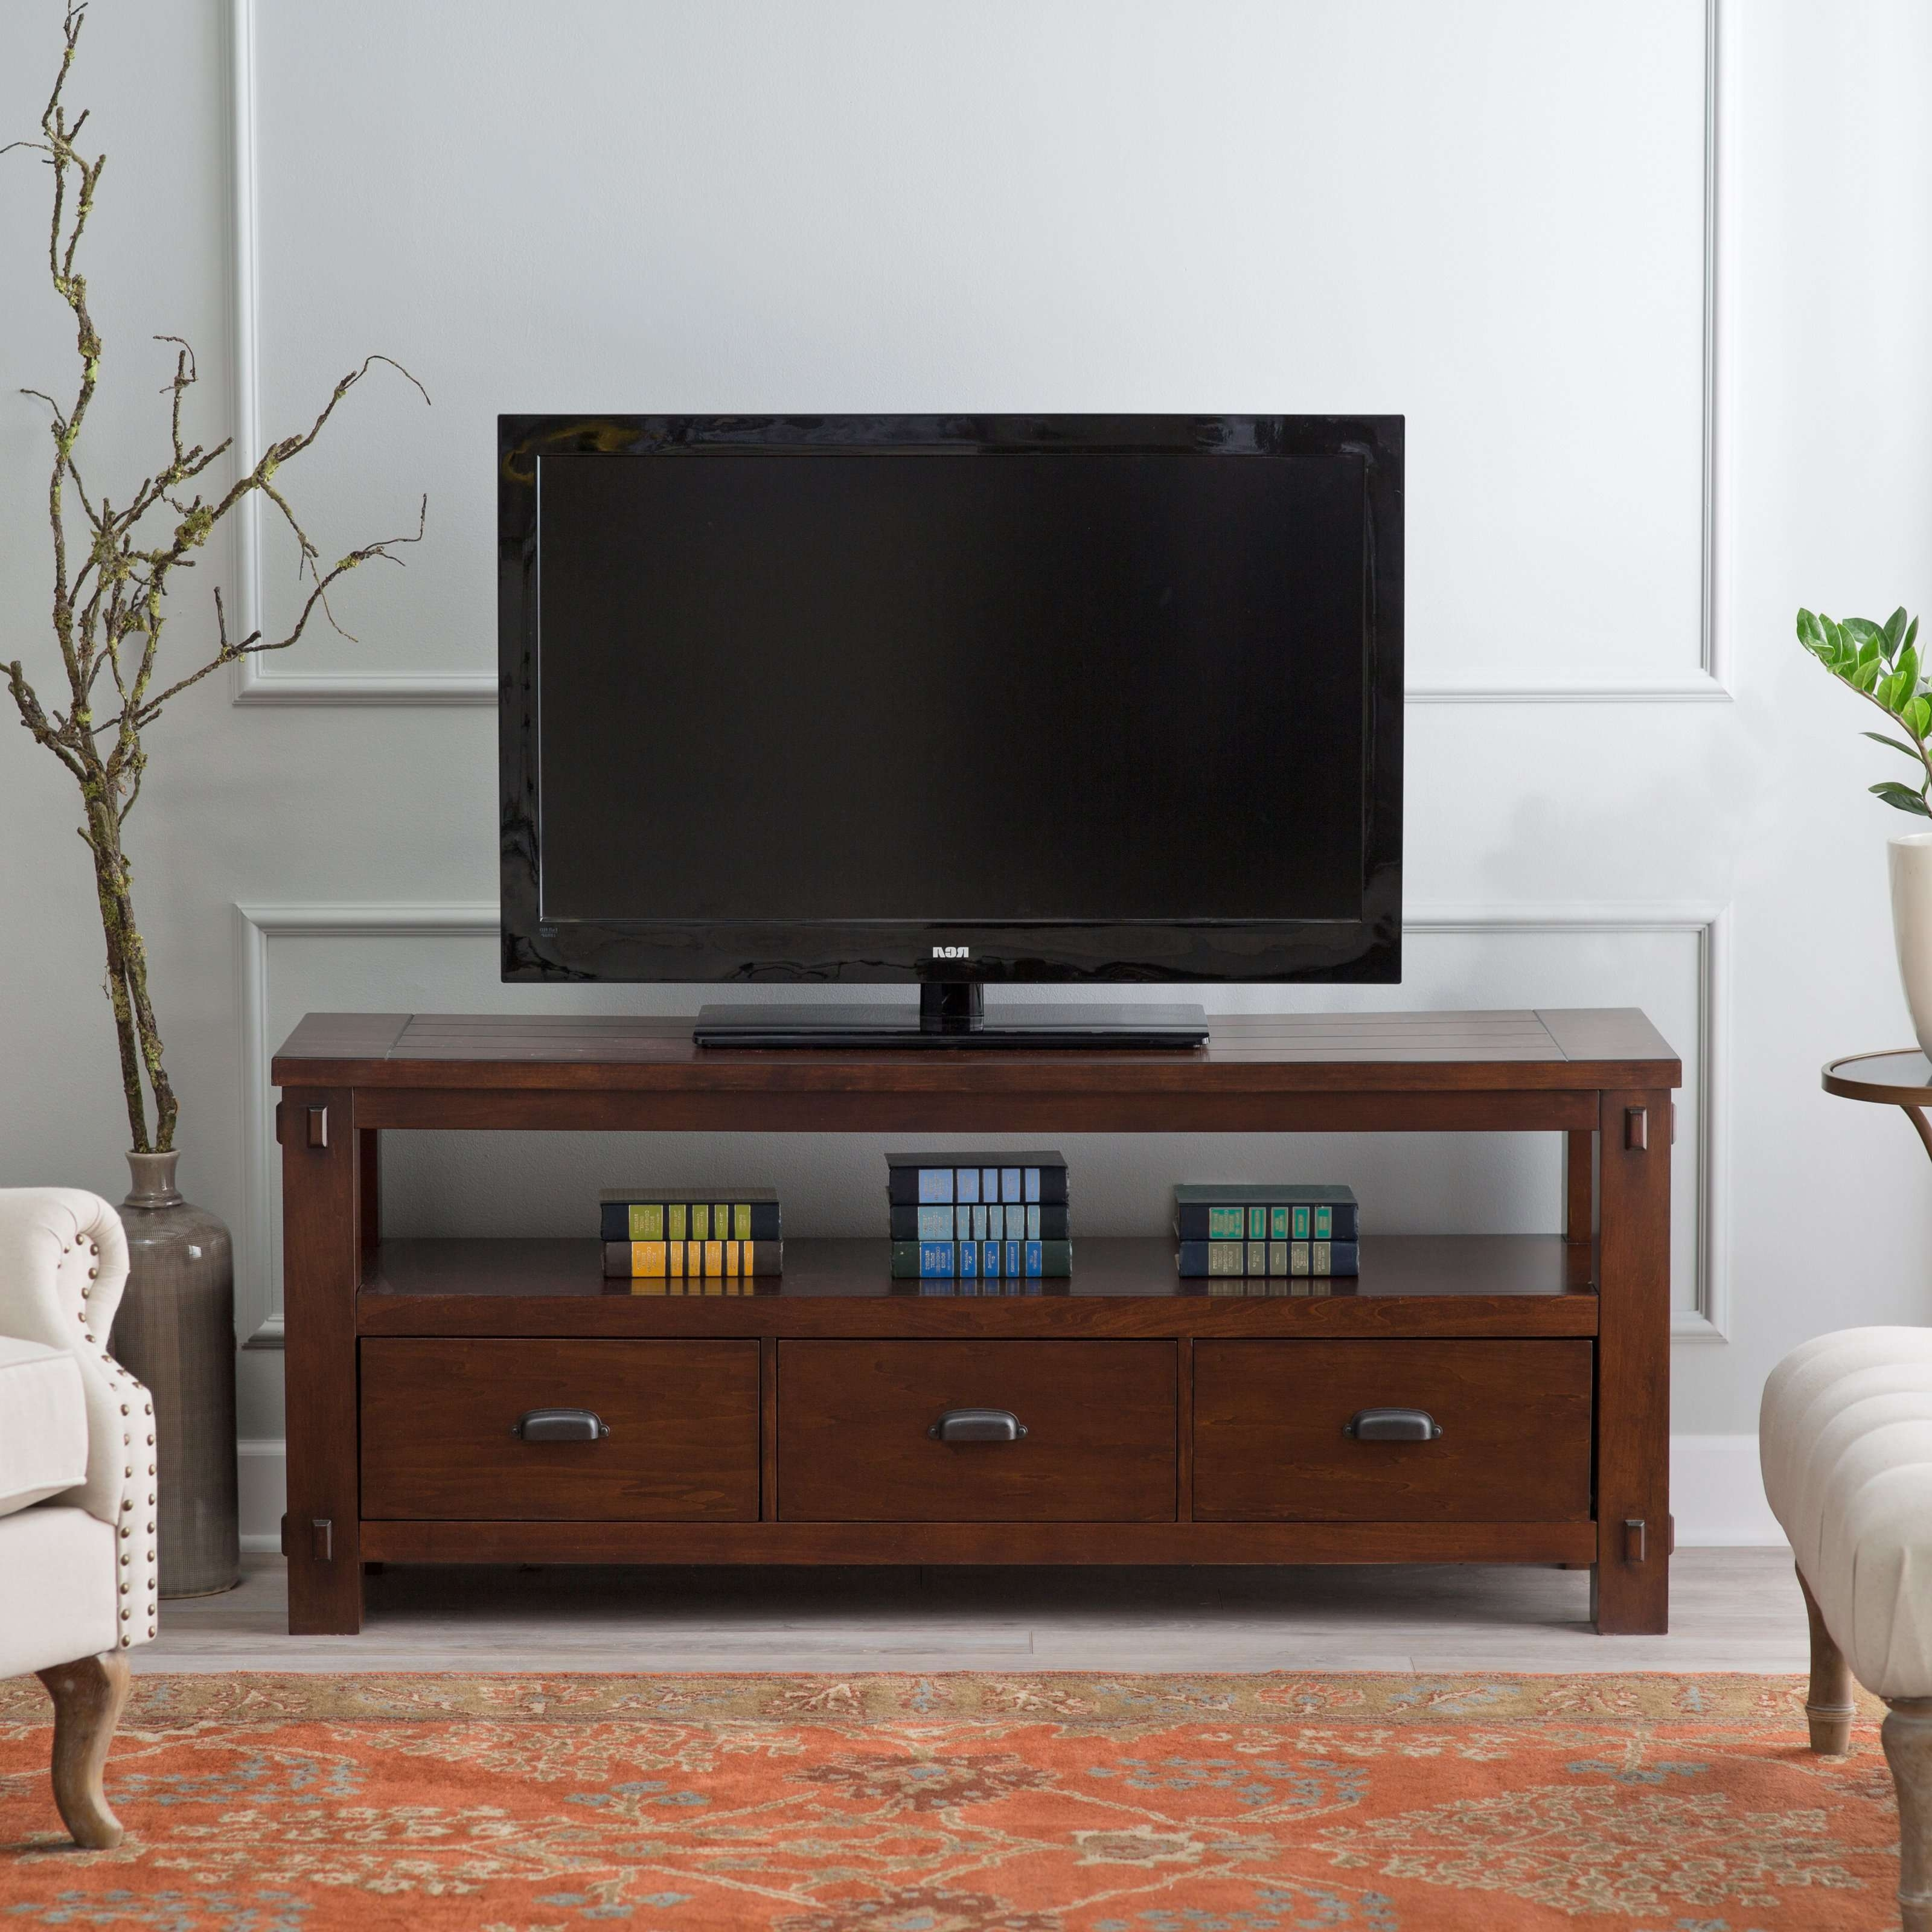 Corner Tv Stand For Inch Flat Screen Fascinating On Home Decors Regarding 40 Inch Corner Tv Stands (View 8 of 15)